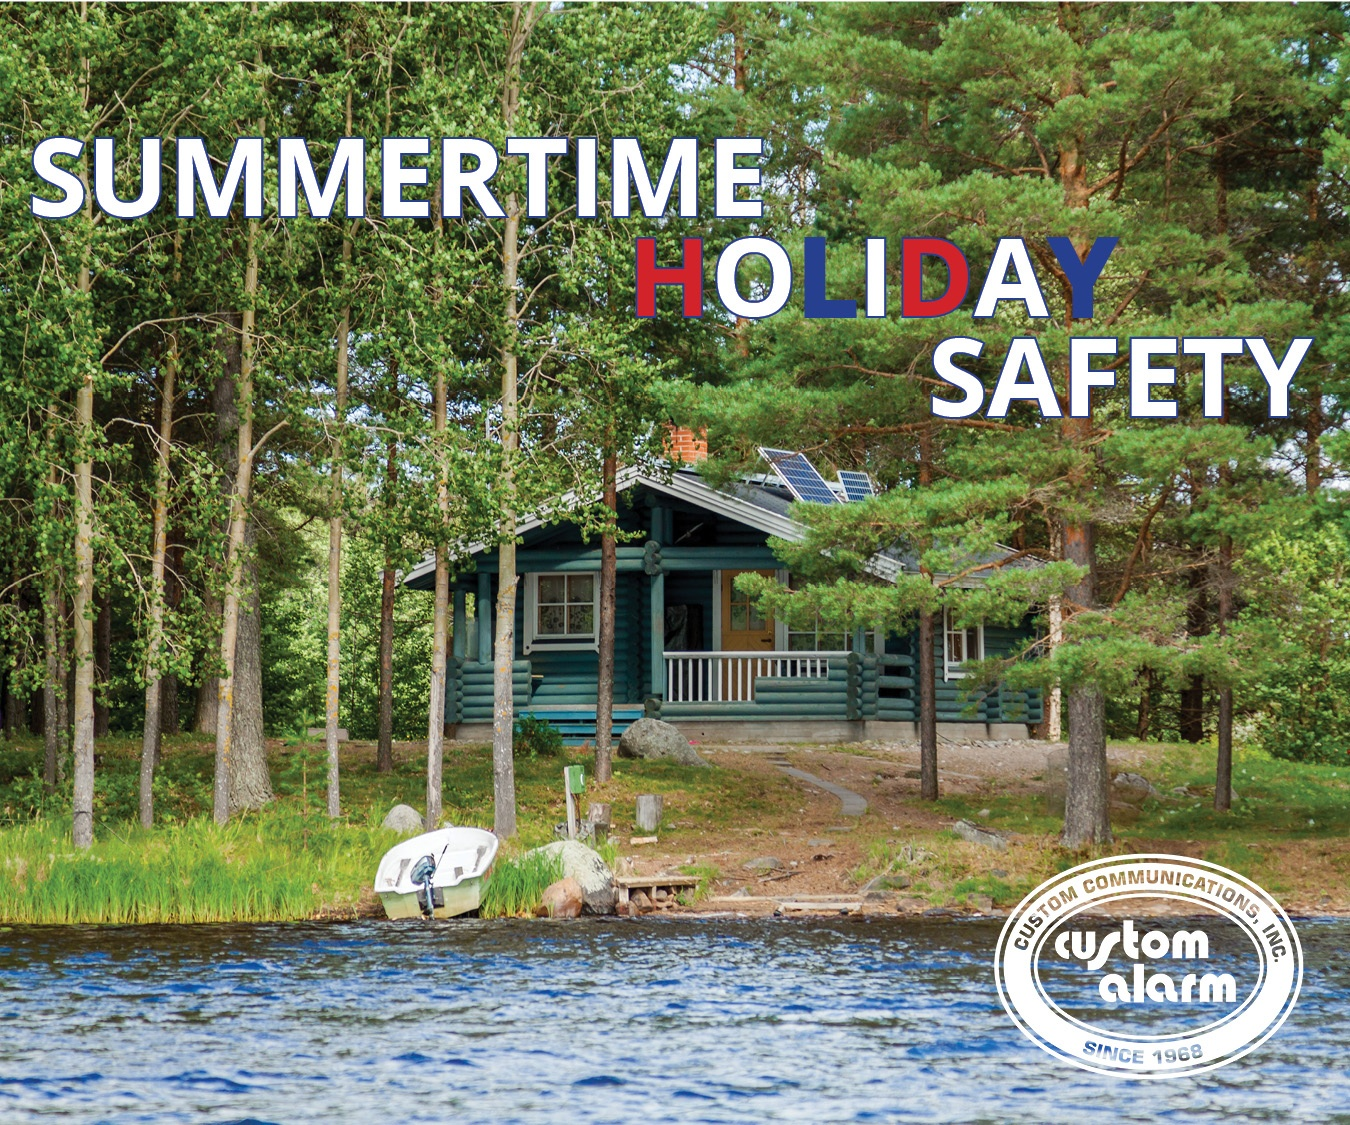 Summertime Holiday Safety